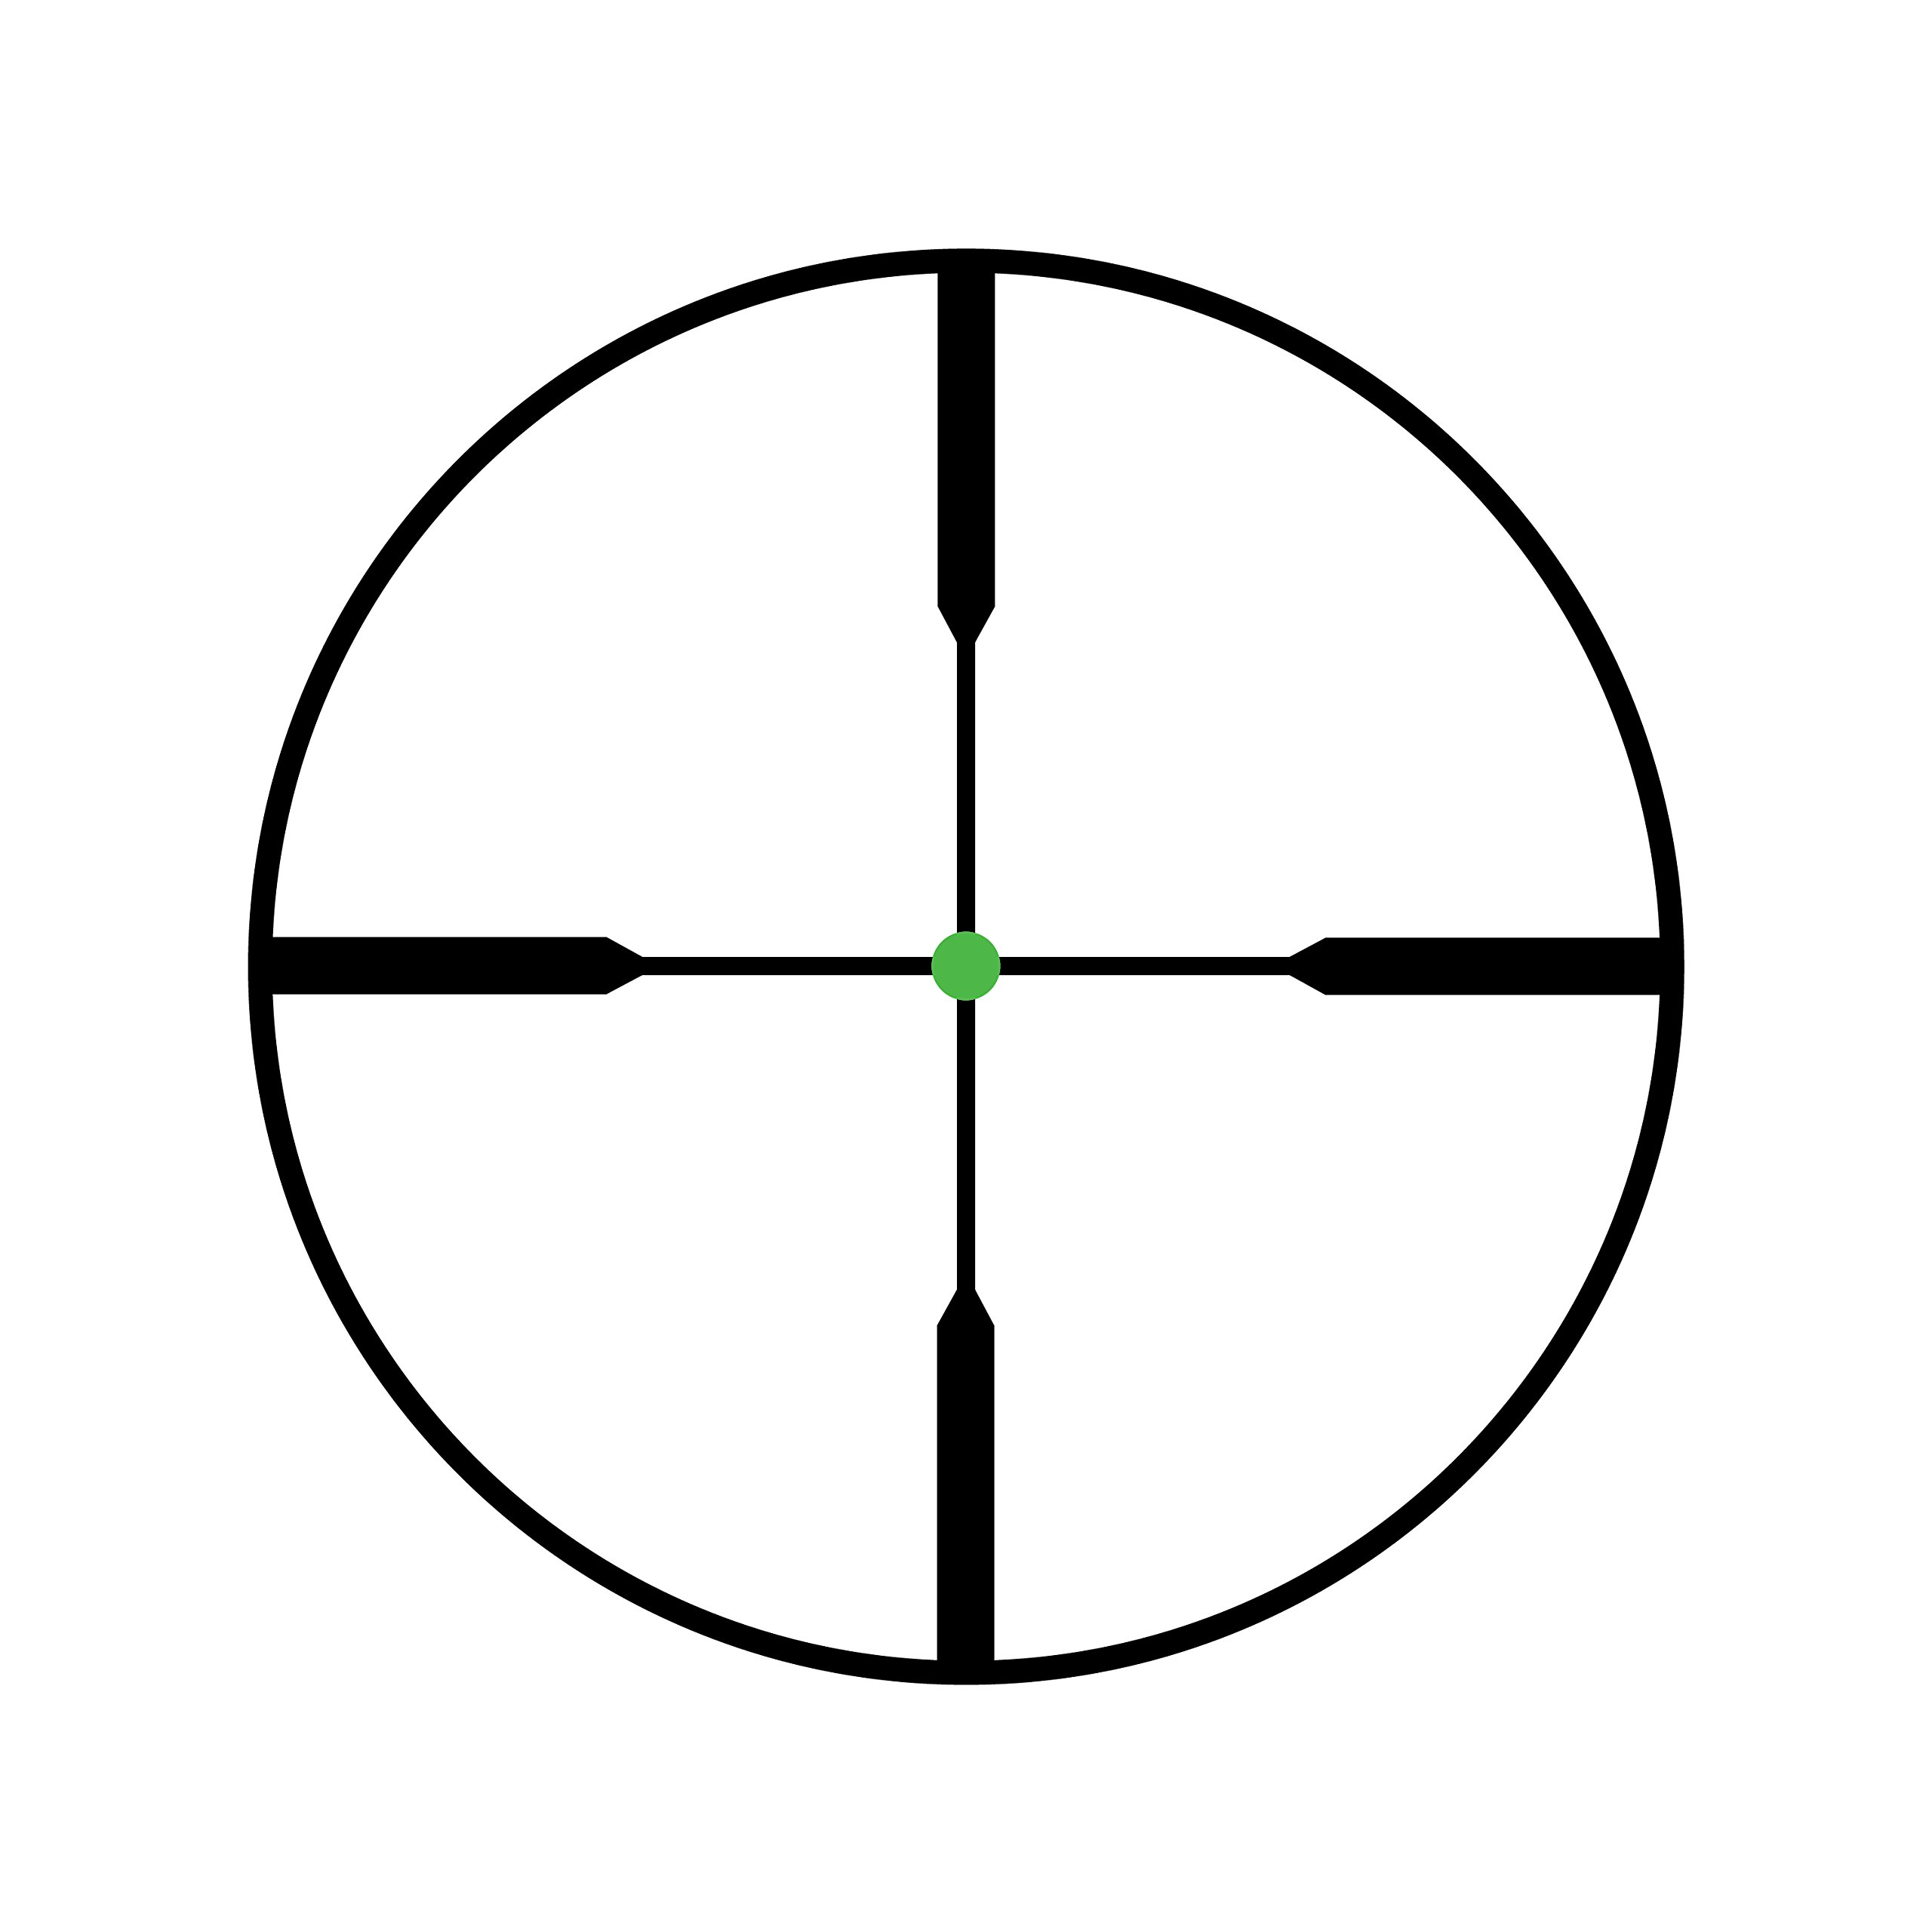 Trijicon TR22-1G AccuPoint 2.5-10x56mm Riflescope, 30mm Main Tube, Standard Duplex Crosshair Reticle with Green Dot, Matte Black by Trijicon